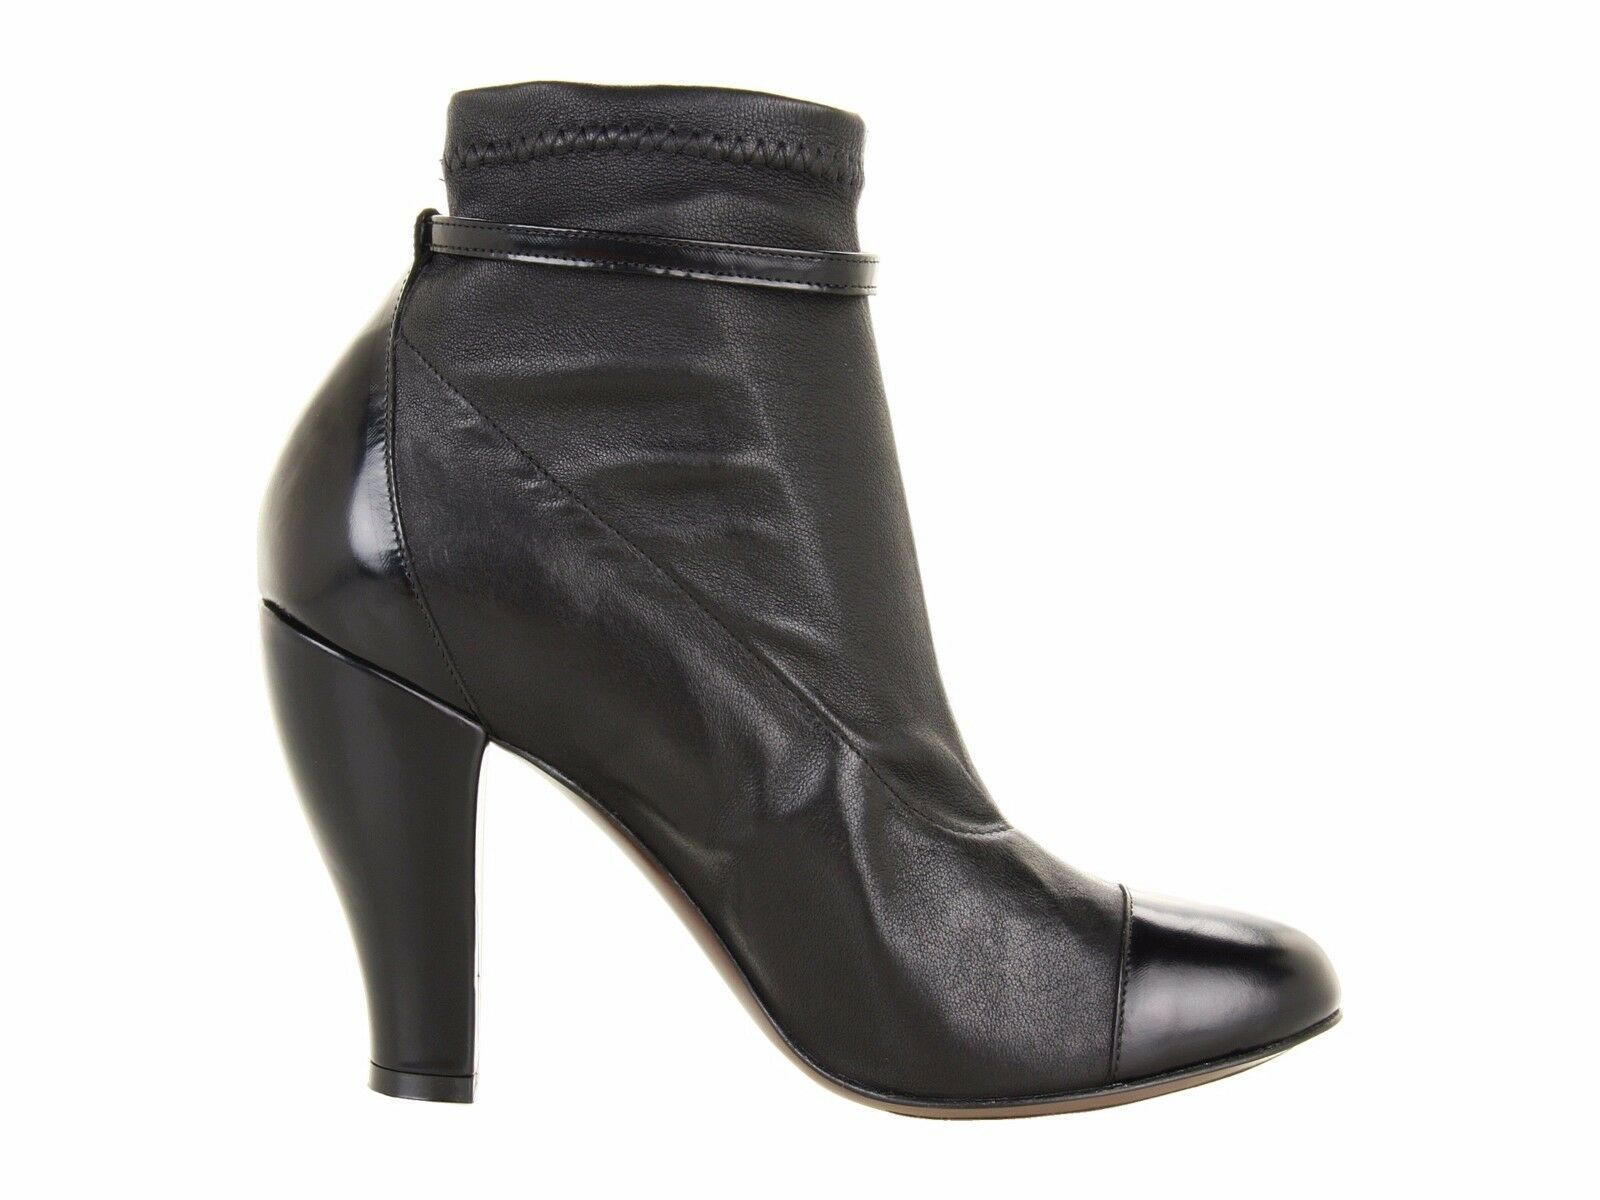 785 NEW Robert Clergerie Paris Mane US 7 Black Black Black Leather Heel Ankle Booties Boots 3363eb